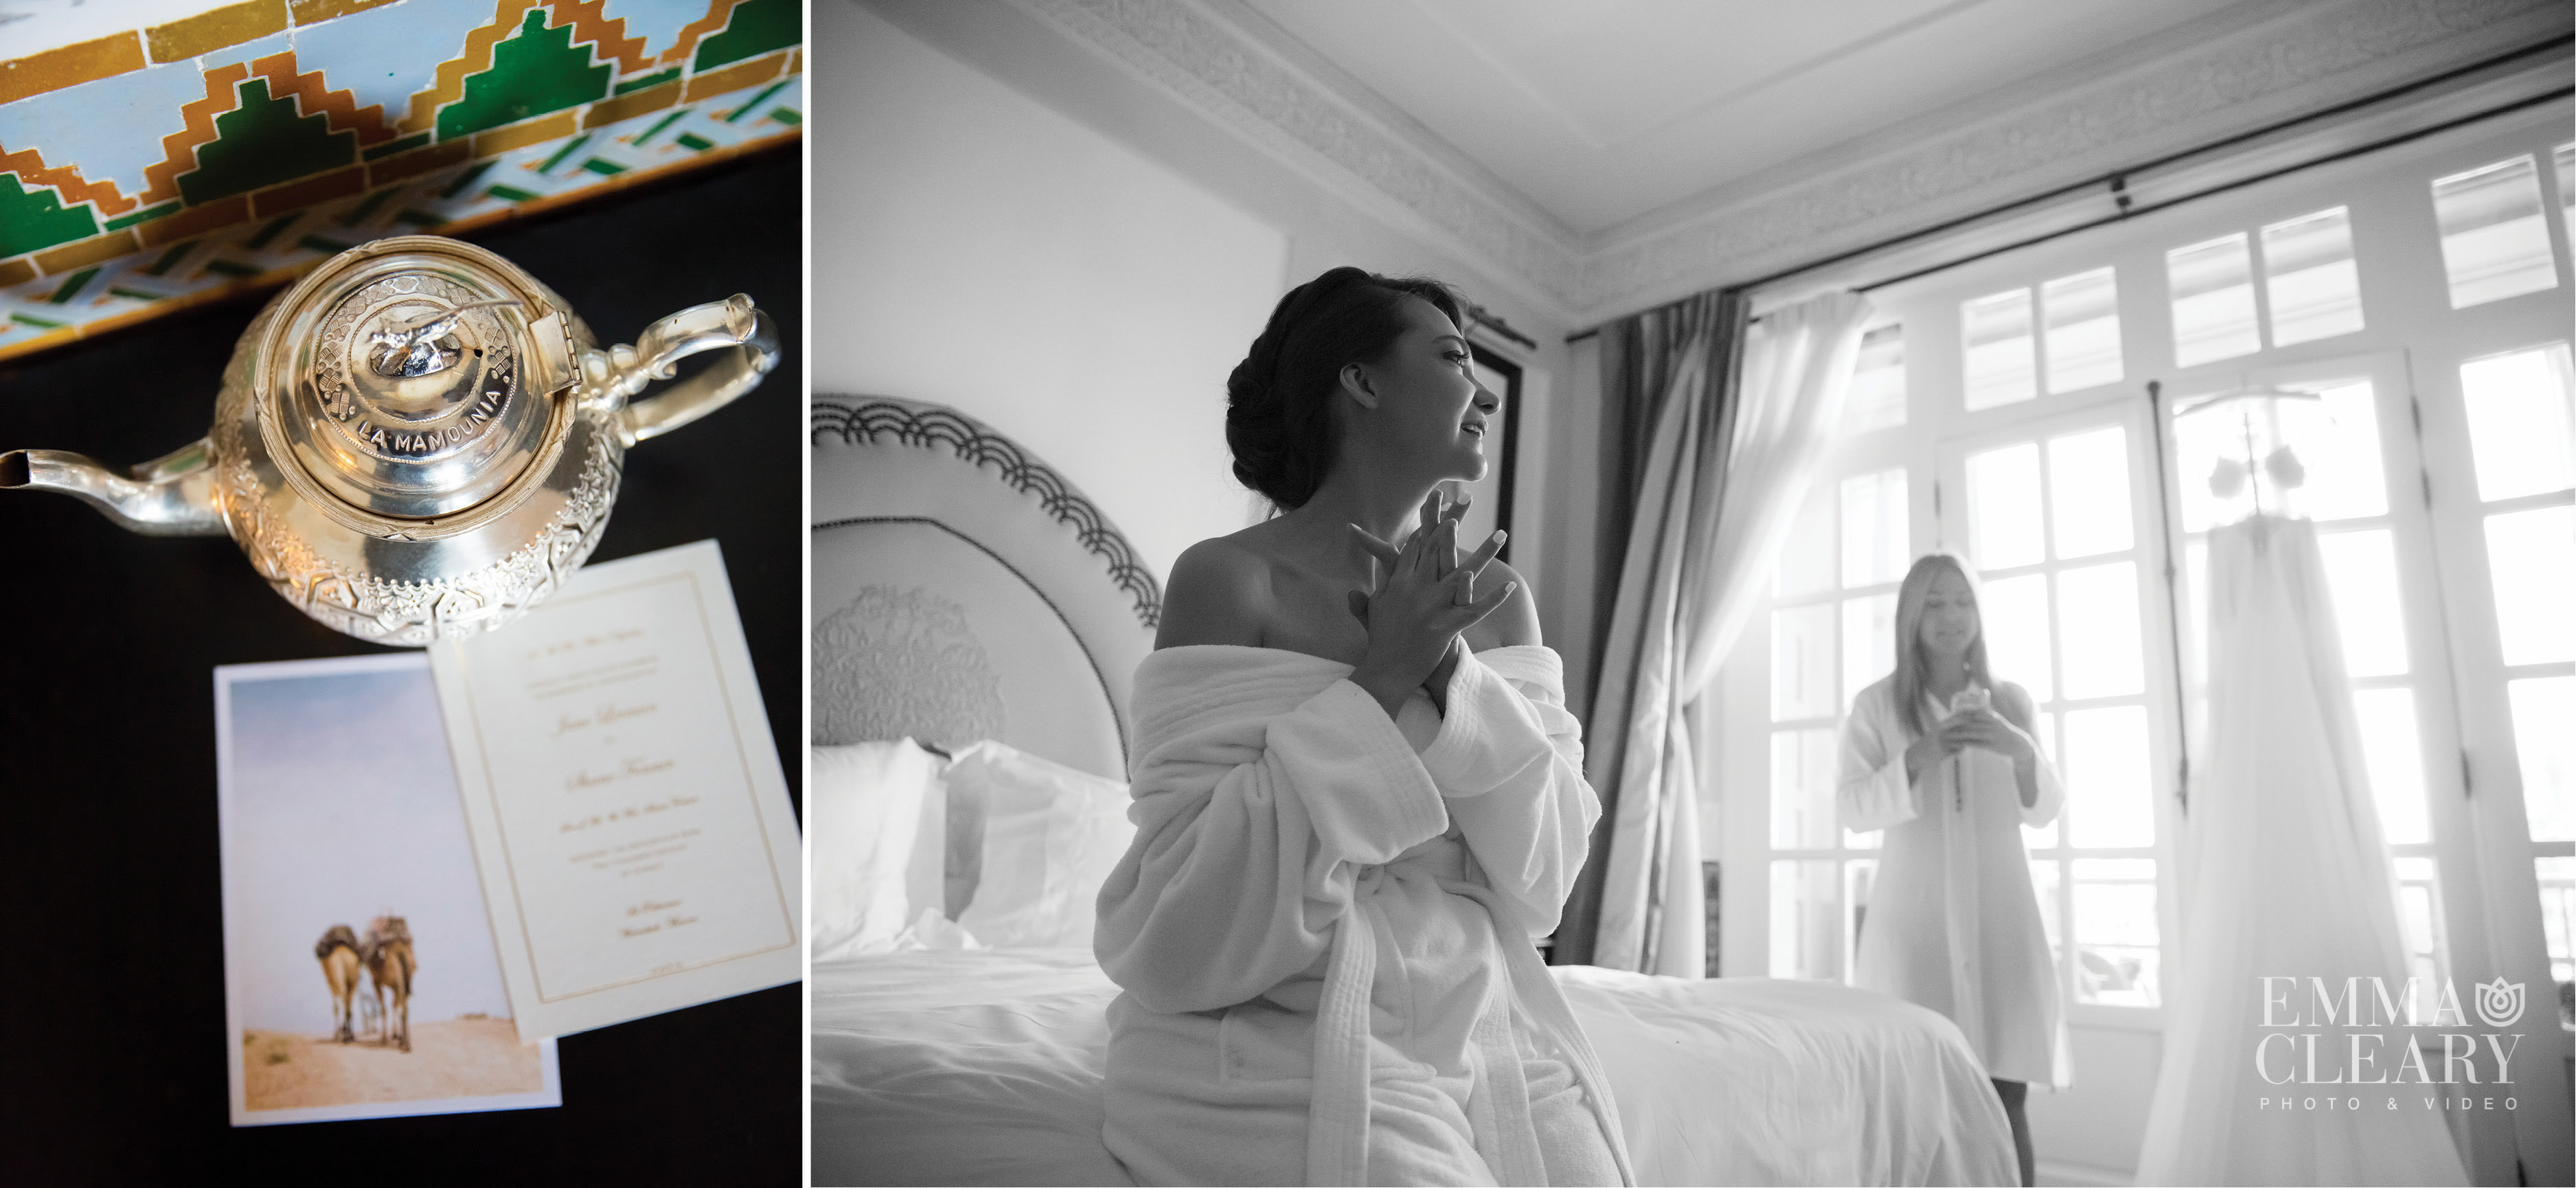 Emma_cleary_photography Destination Wedding Morrocco07